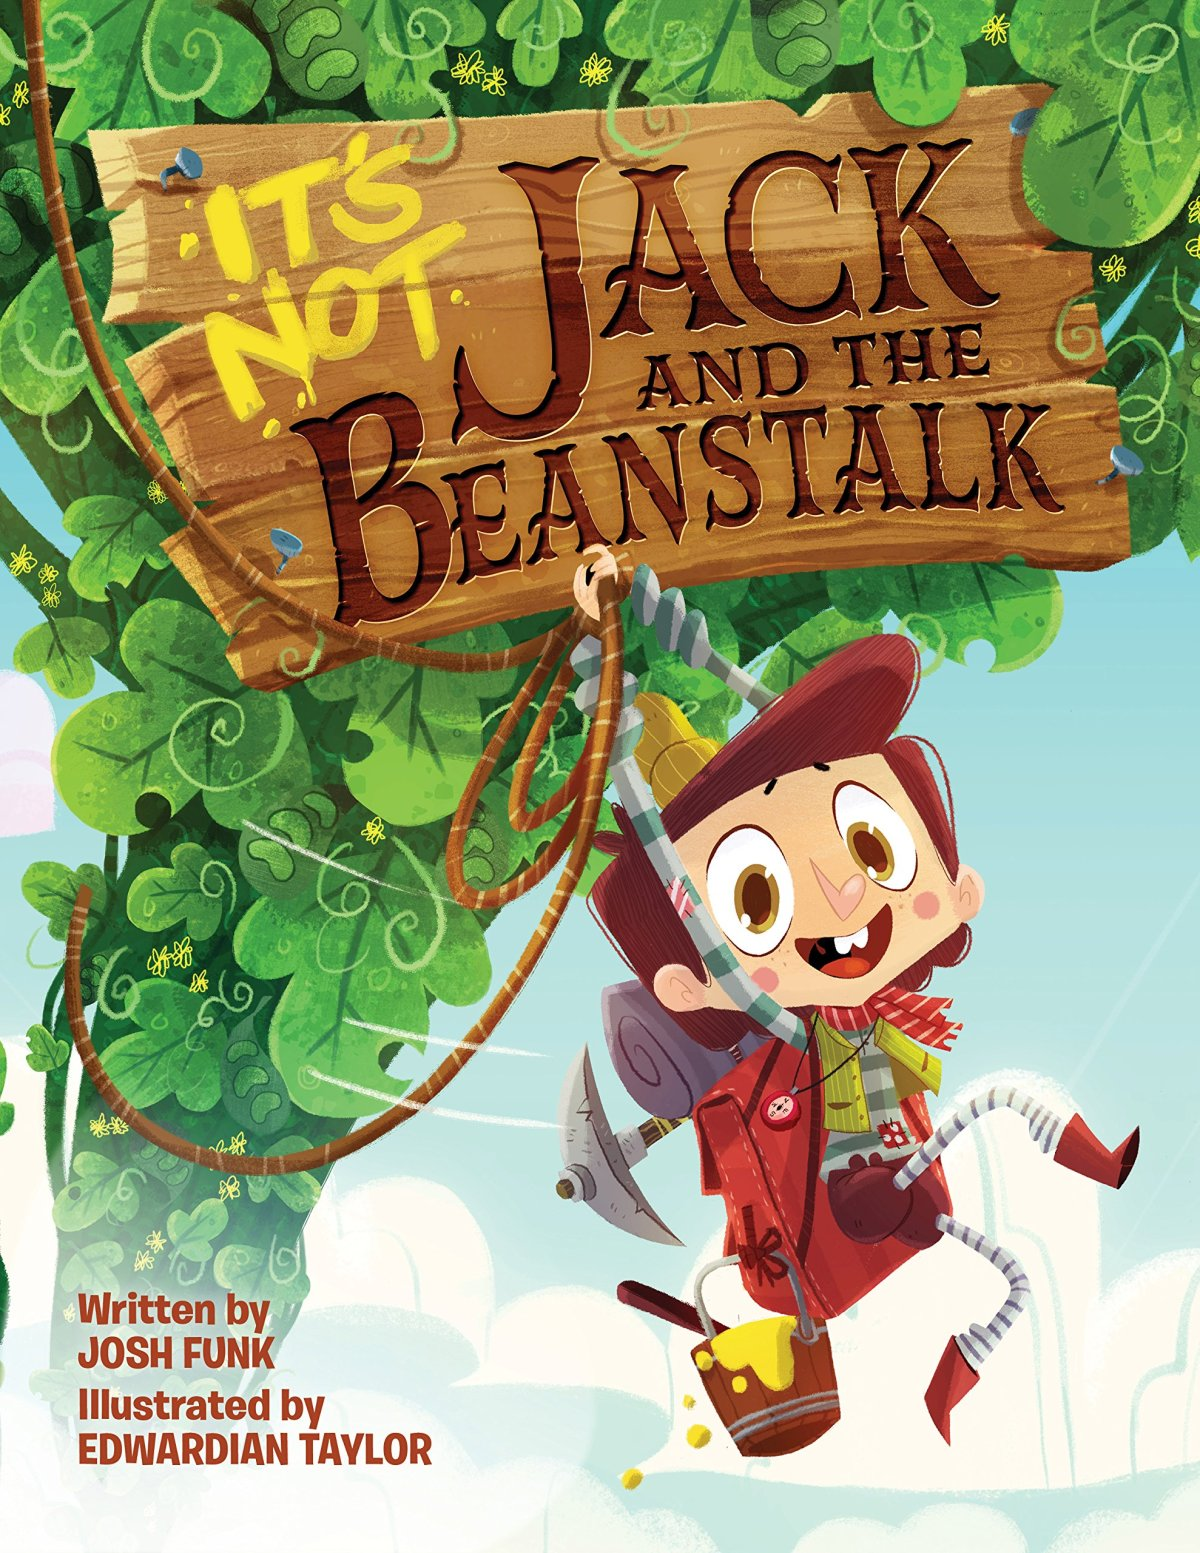 It's Not Jack and theBeanstalk